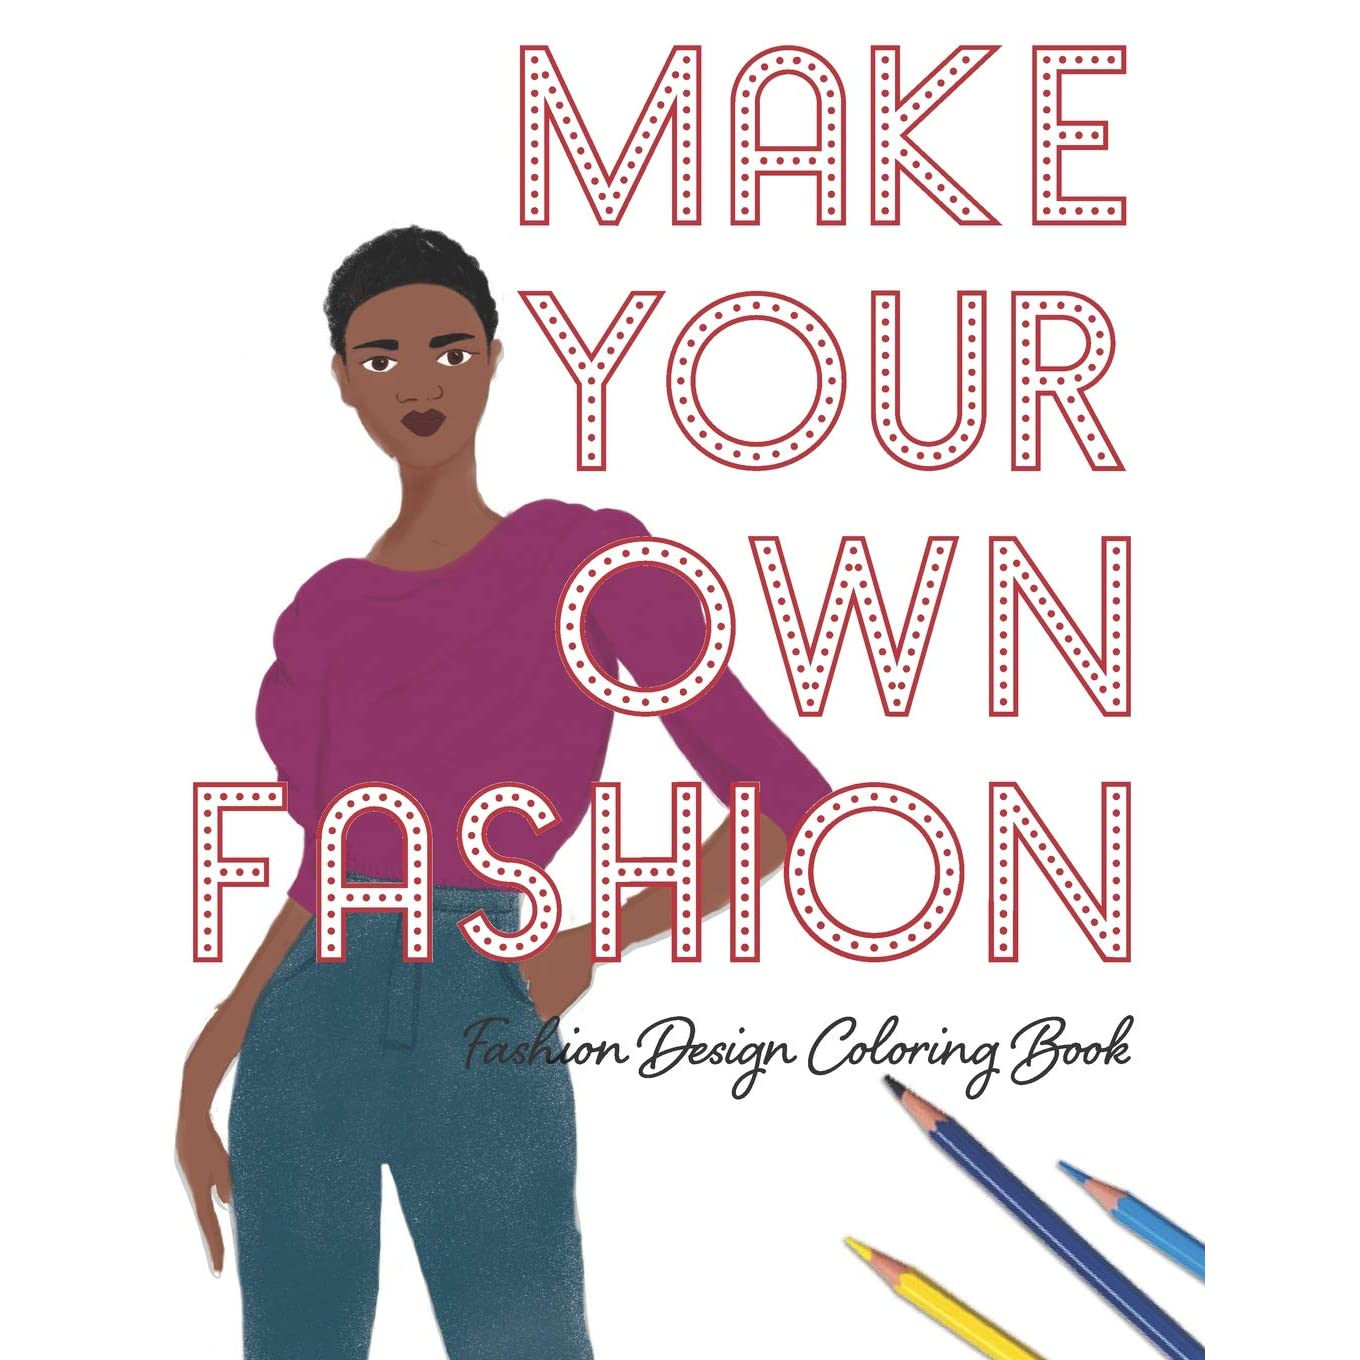 Make Your Own Fashion Fashion Design Coloring Book By Lovable Duck Sketchbooks